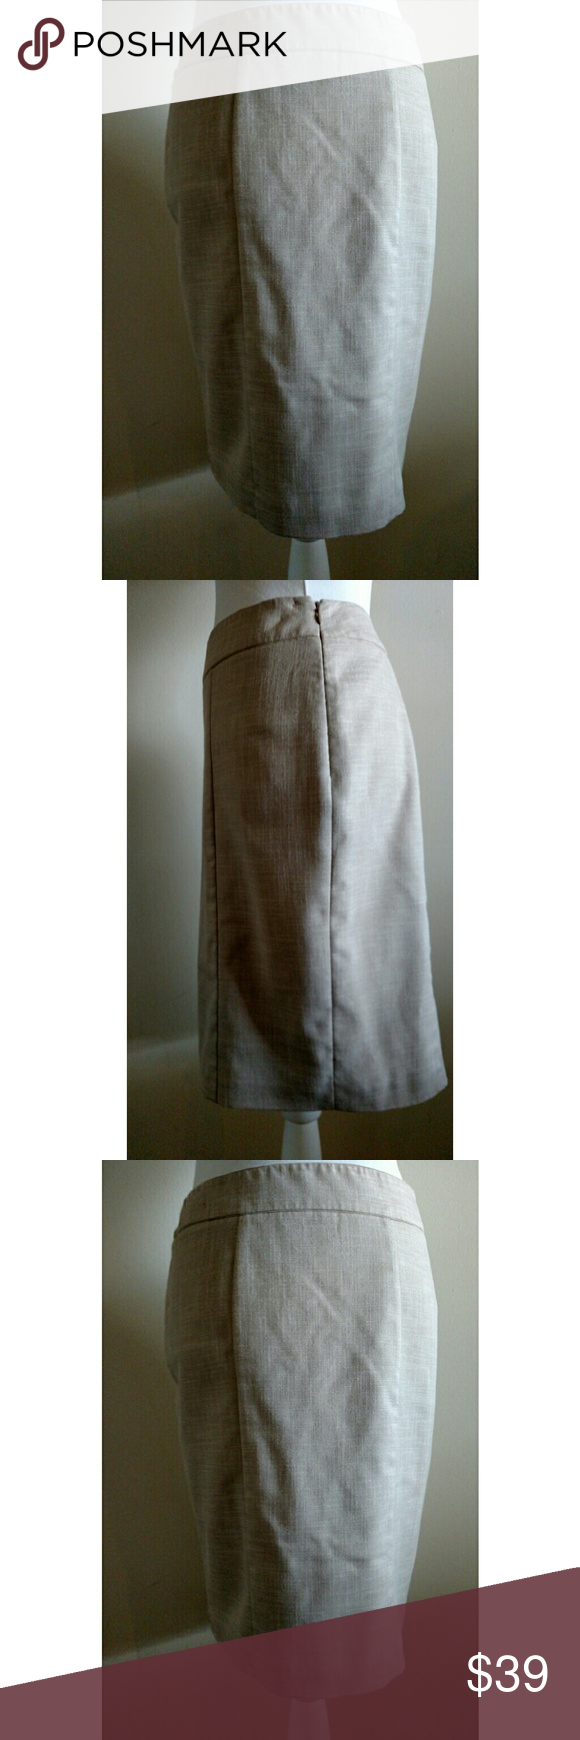 White House Black Market Skirt - Size 4 White House Black Market Skirt - Size 4  Neutral skirt has detail along the back center hem (see picture for details).  Side zip and hook and eye closure. Lined.  Excellent used condition  Materials: 52% rayon, 47% polyester, 1% spandex; Lining: 100% polyester  Machine wash cold  No stains, holes, or other damage White House Black Market Skirts